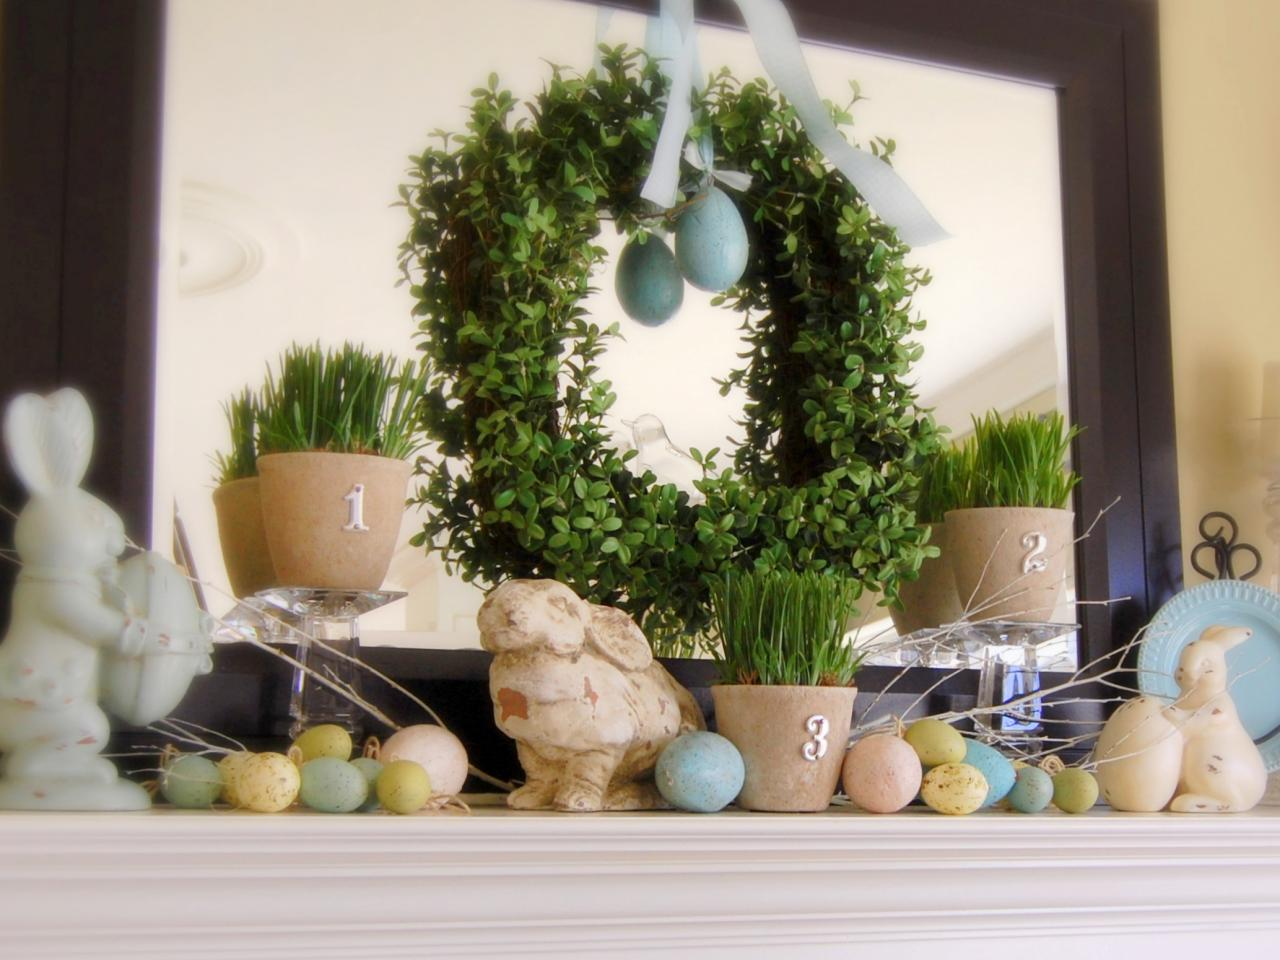 Decorate your mantel year round interior design styles Images for easter decorations